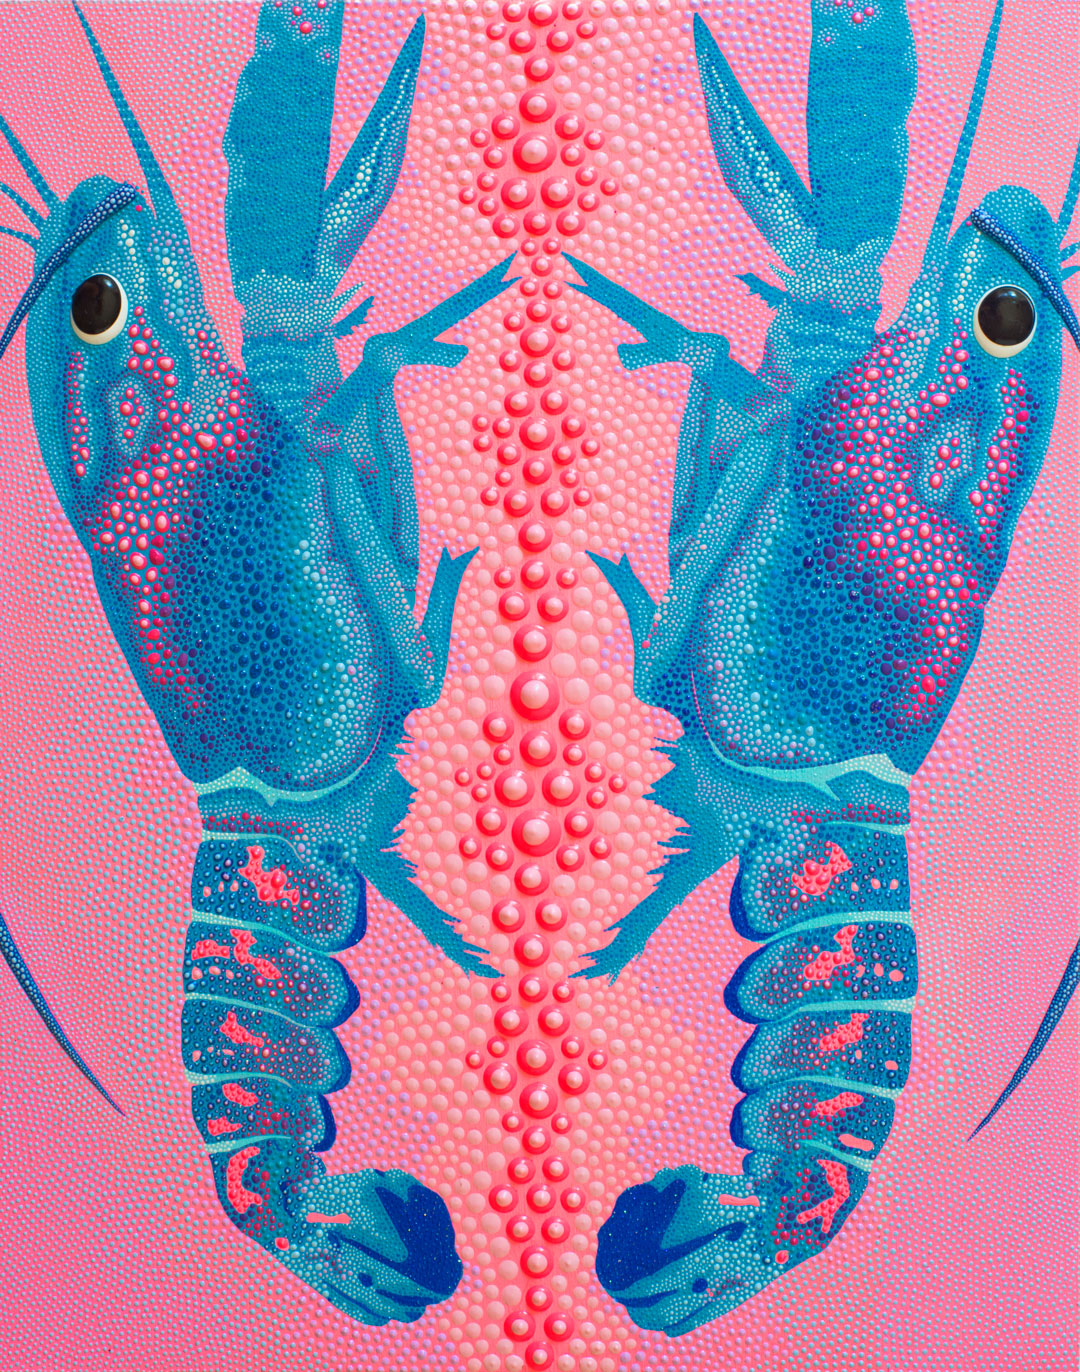 "Cotton Candy Crawfish,  2018, acrylic, dimensional paint on wood panel, 11"" x 14"""